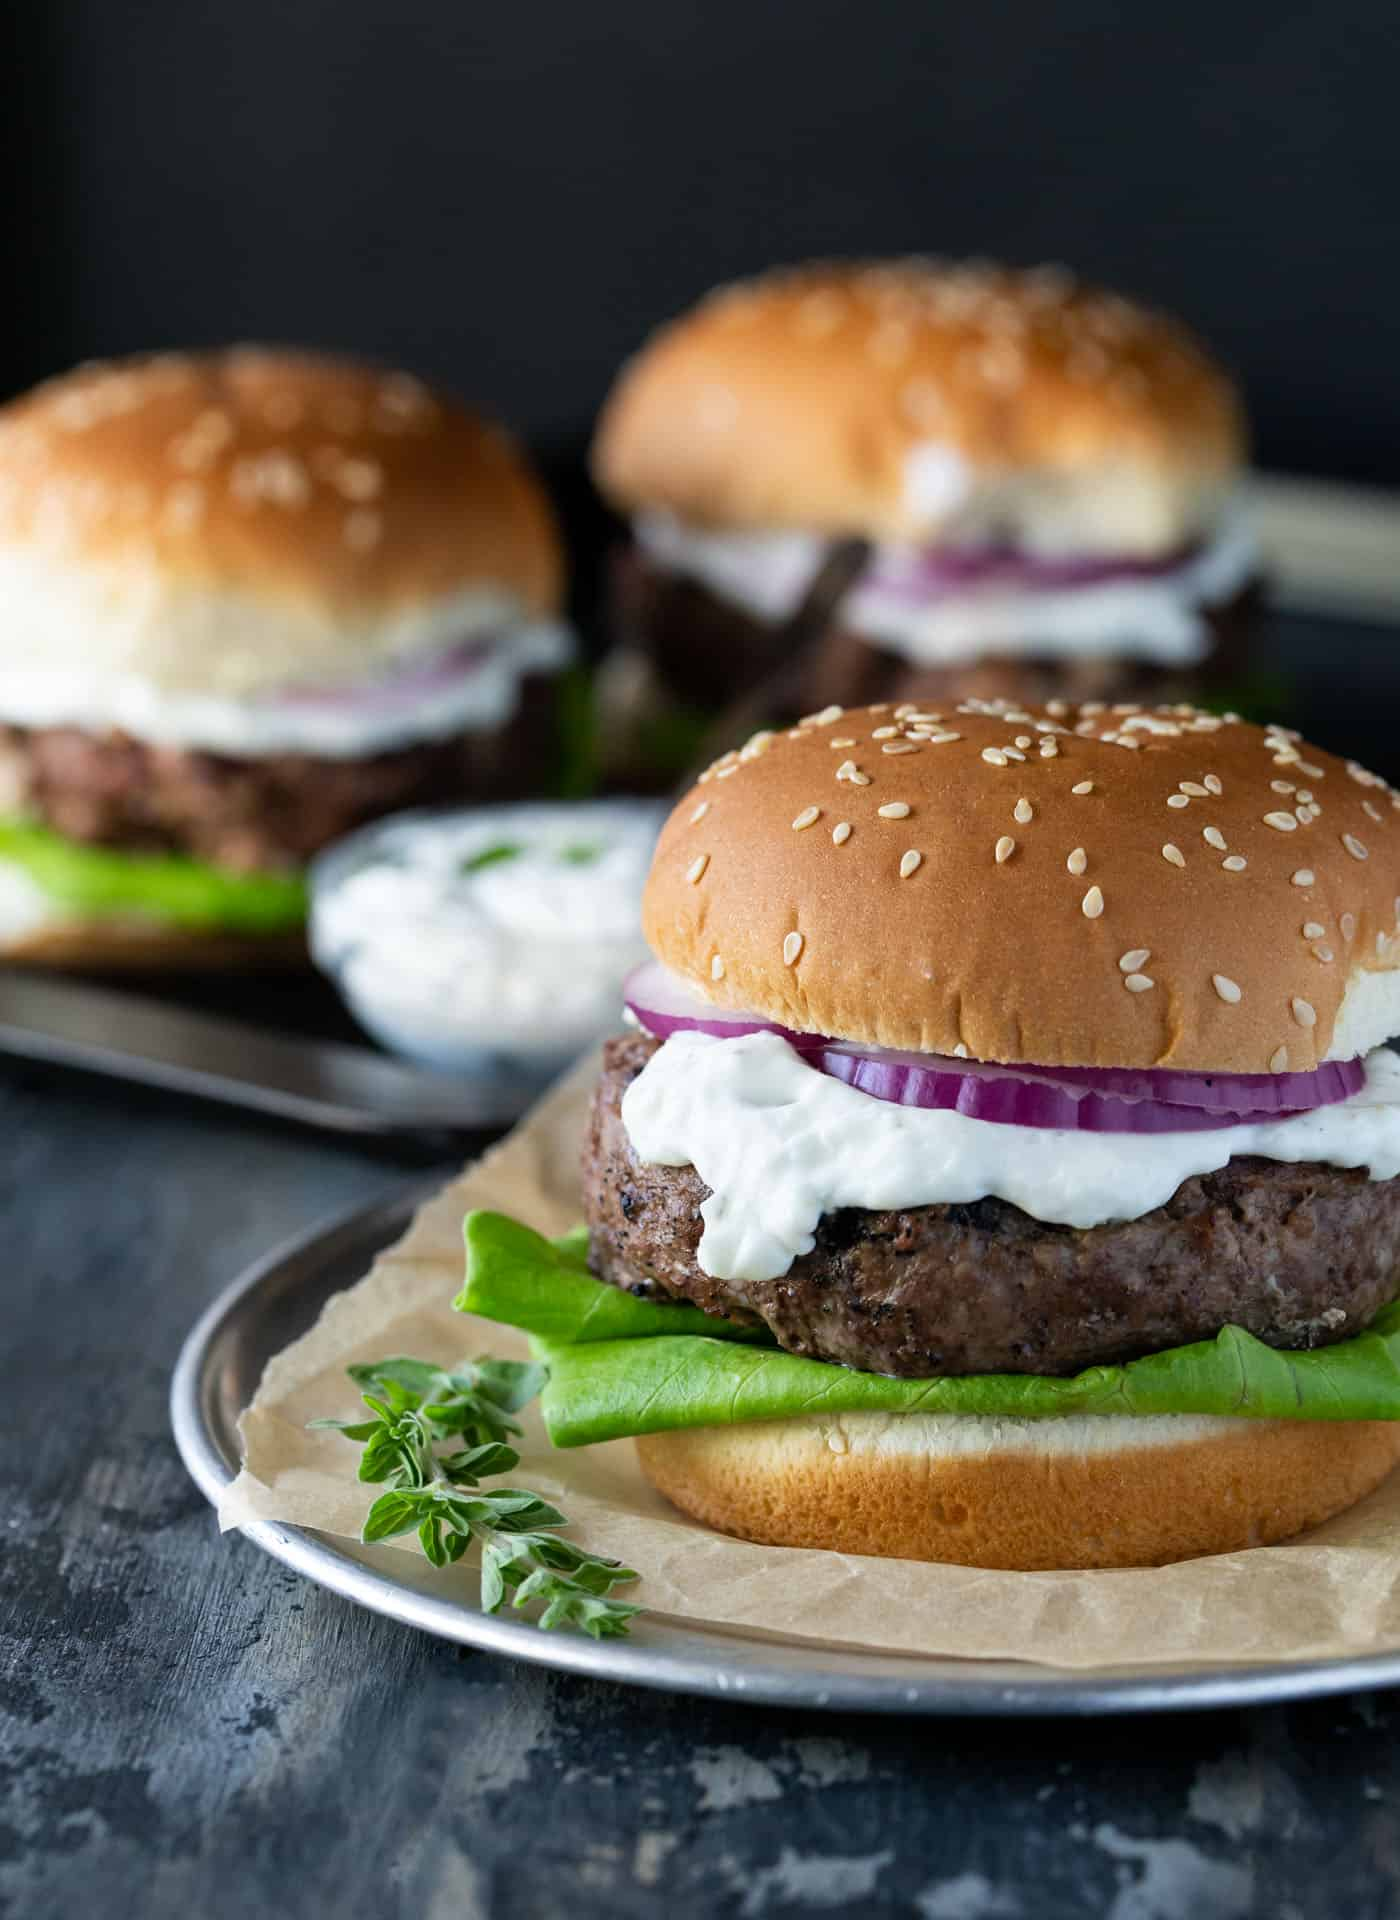 Greek Lam Burger on a sesame seed bun with fresh red onion slices and lettuce for garnish.